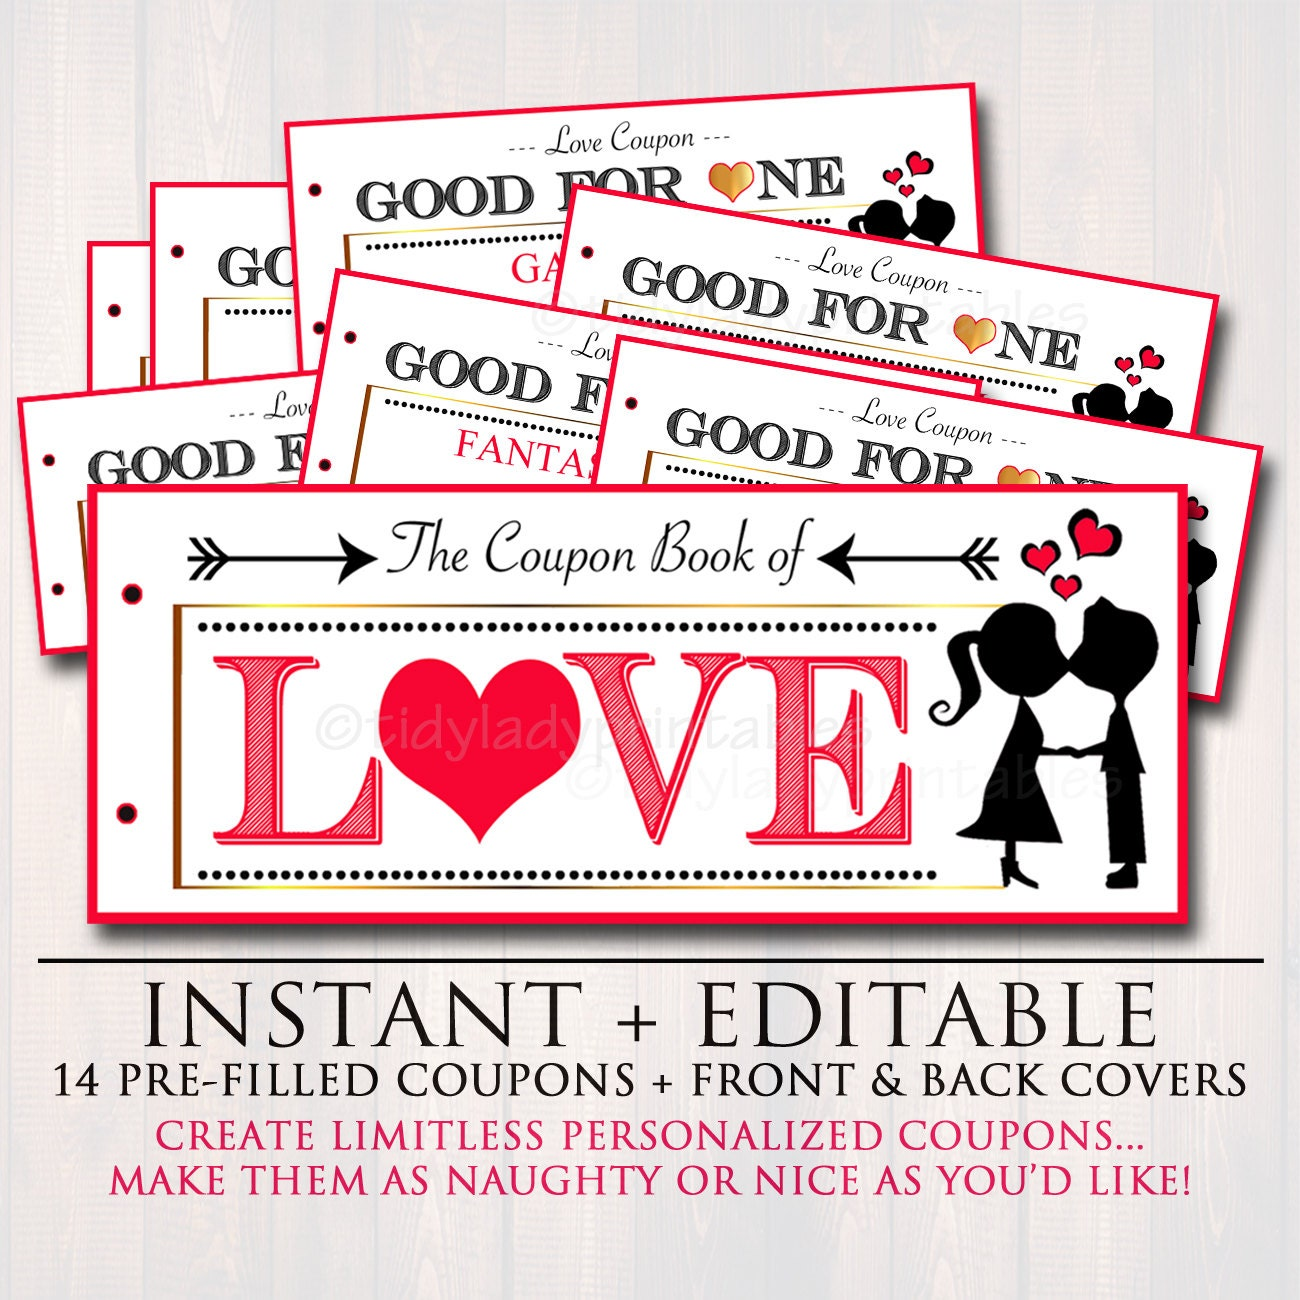 printable coupons editable love coupon book instant printable love coupons r tic gift for him sexy valentine s gift spouse husband boyfriend